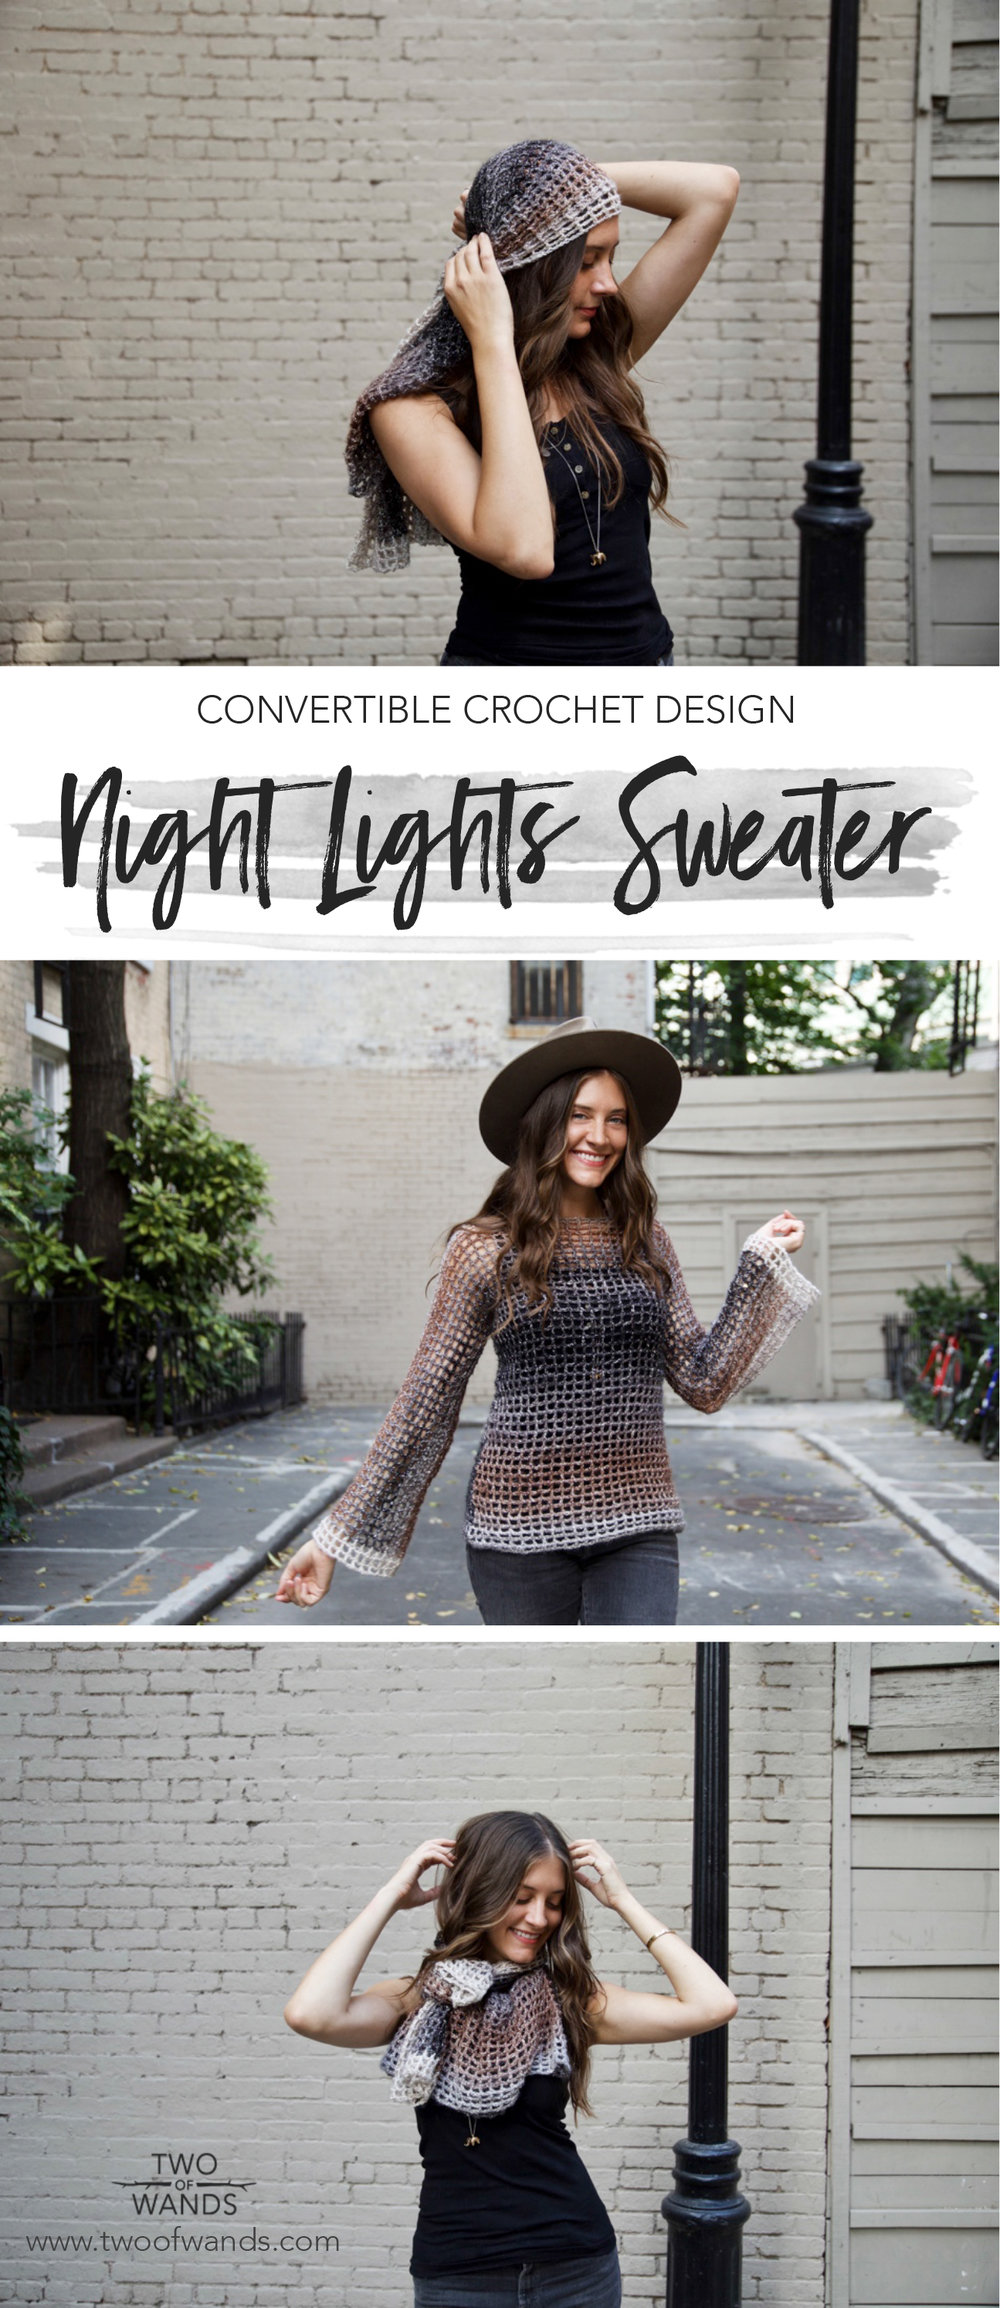 Night Lights Sweater by Two of Wands